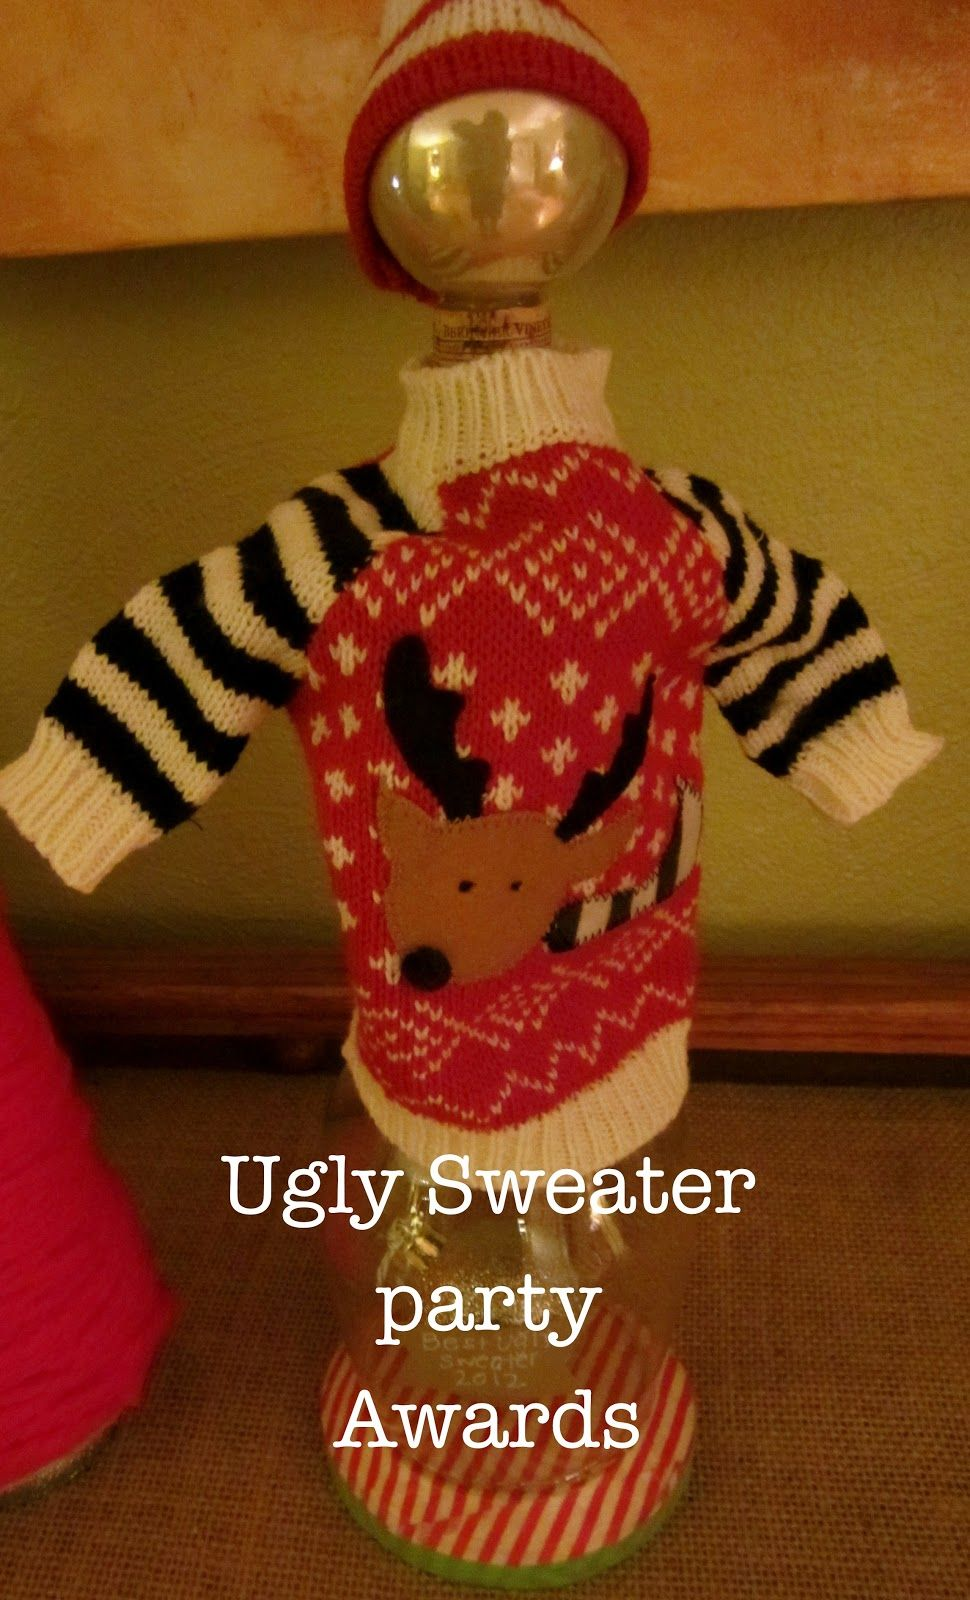 Christmas Party Award Ideas Part - 18: Pumpkin Loves: Ugly Sweater Party: The Awards